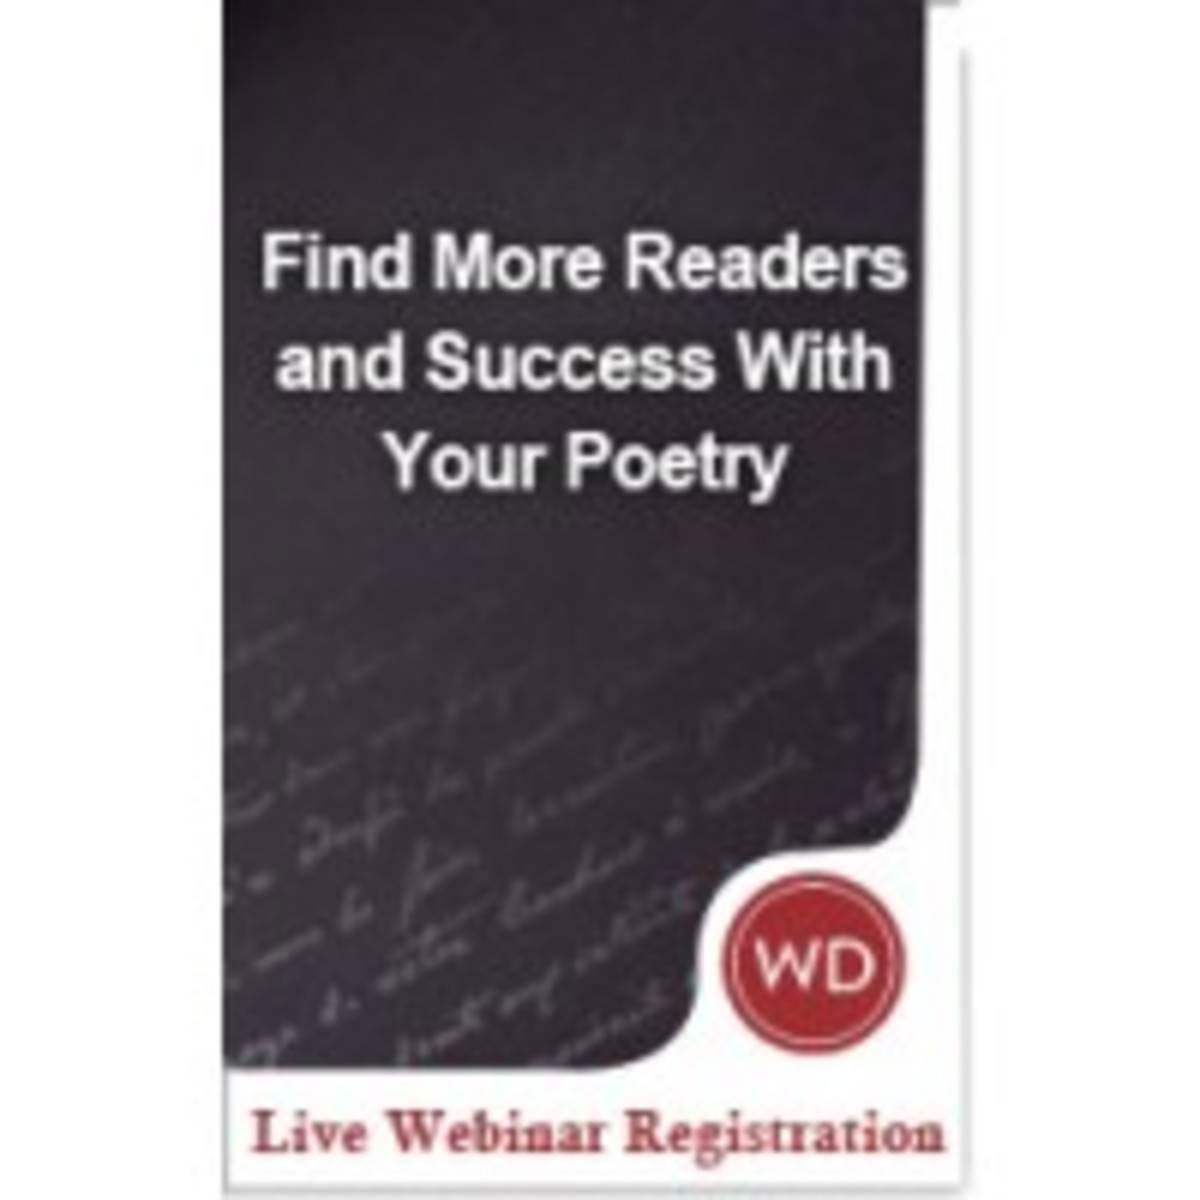 find_more_readers_webinar